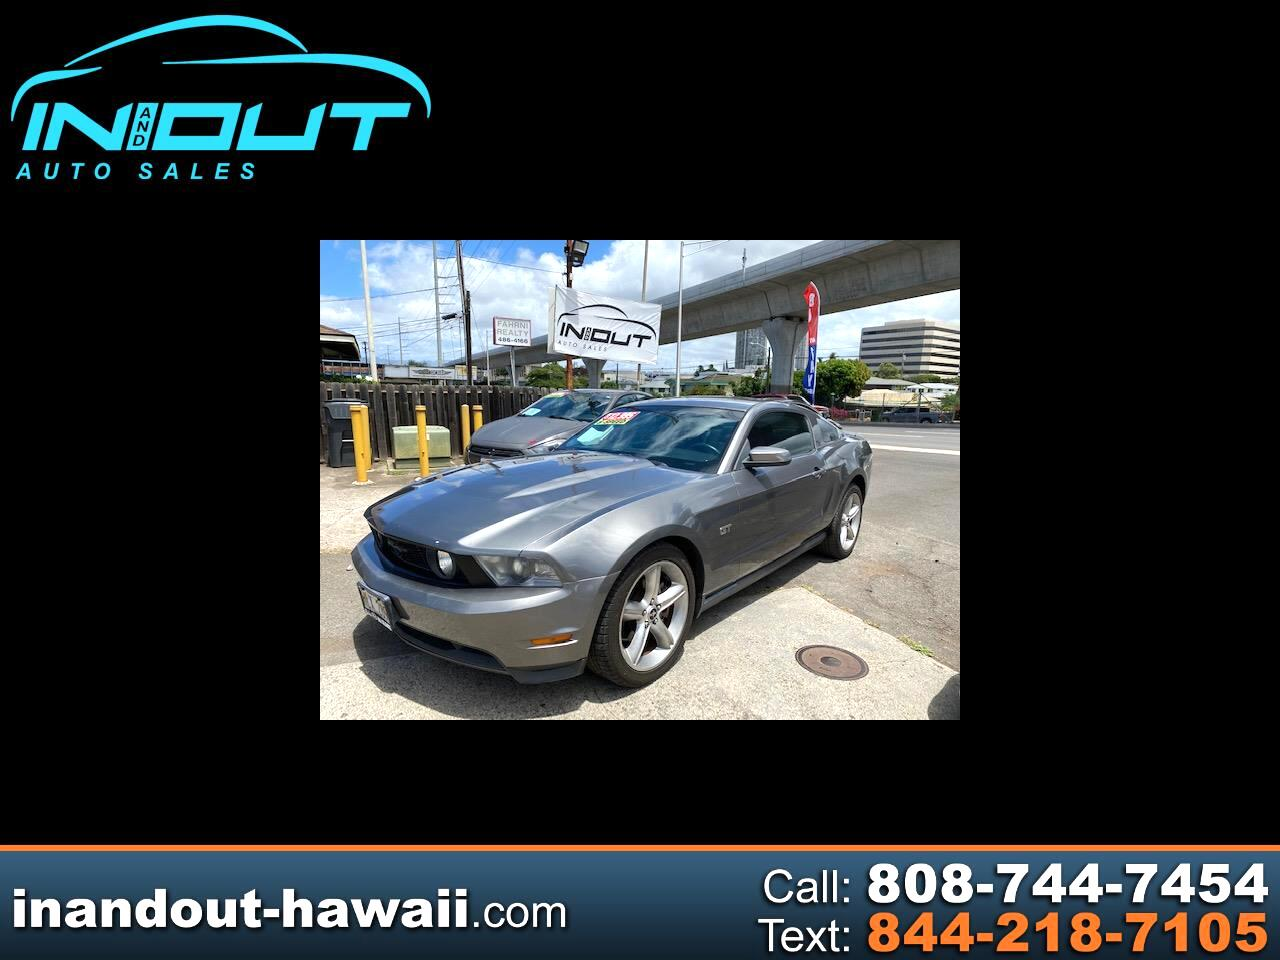 Ford Mustang 2dr Cpe GT 2010